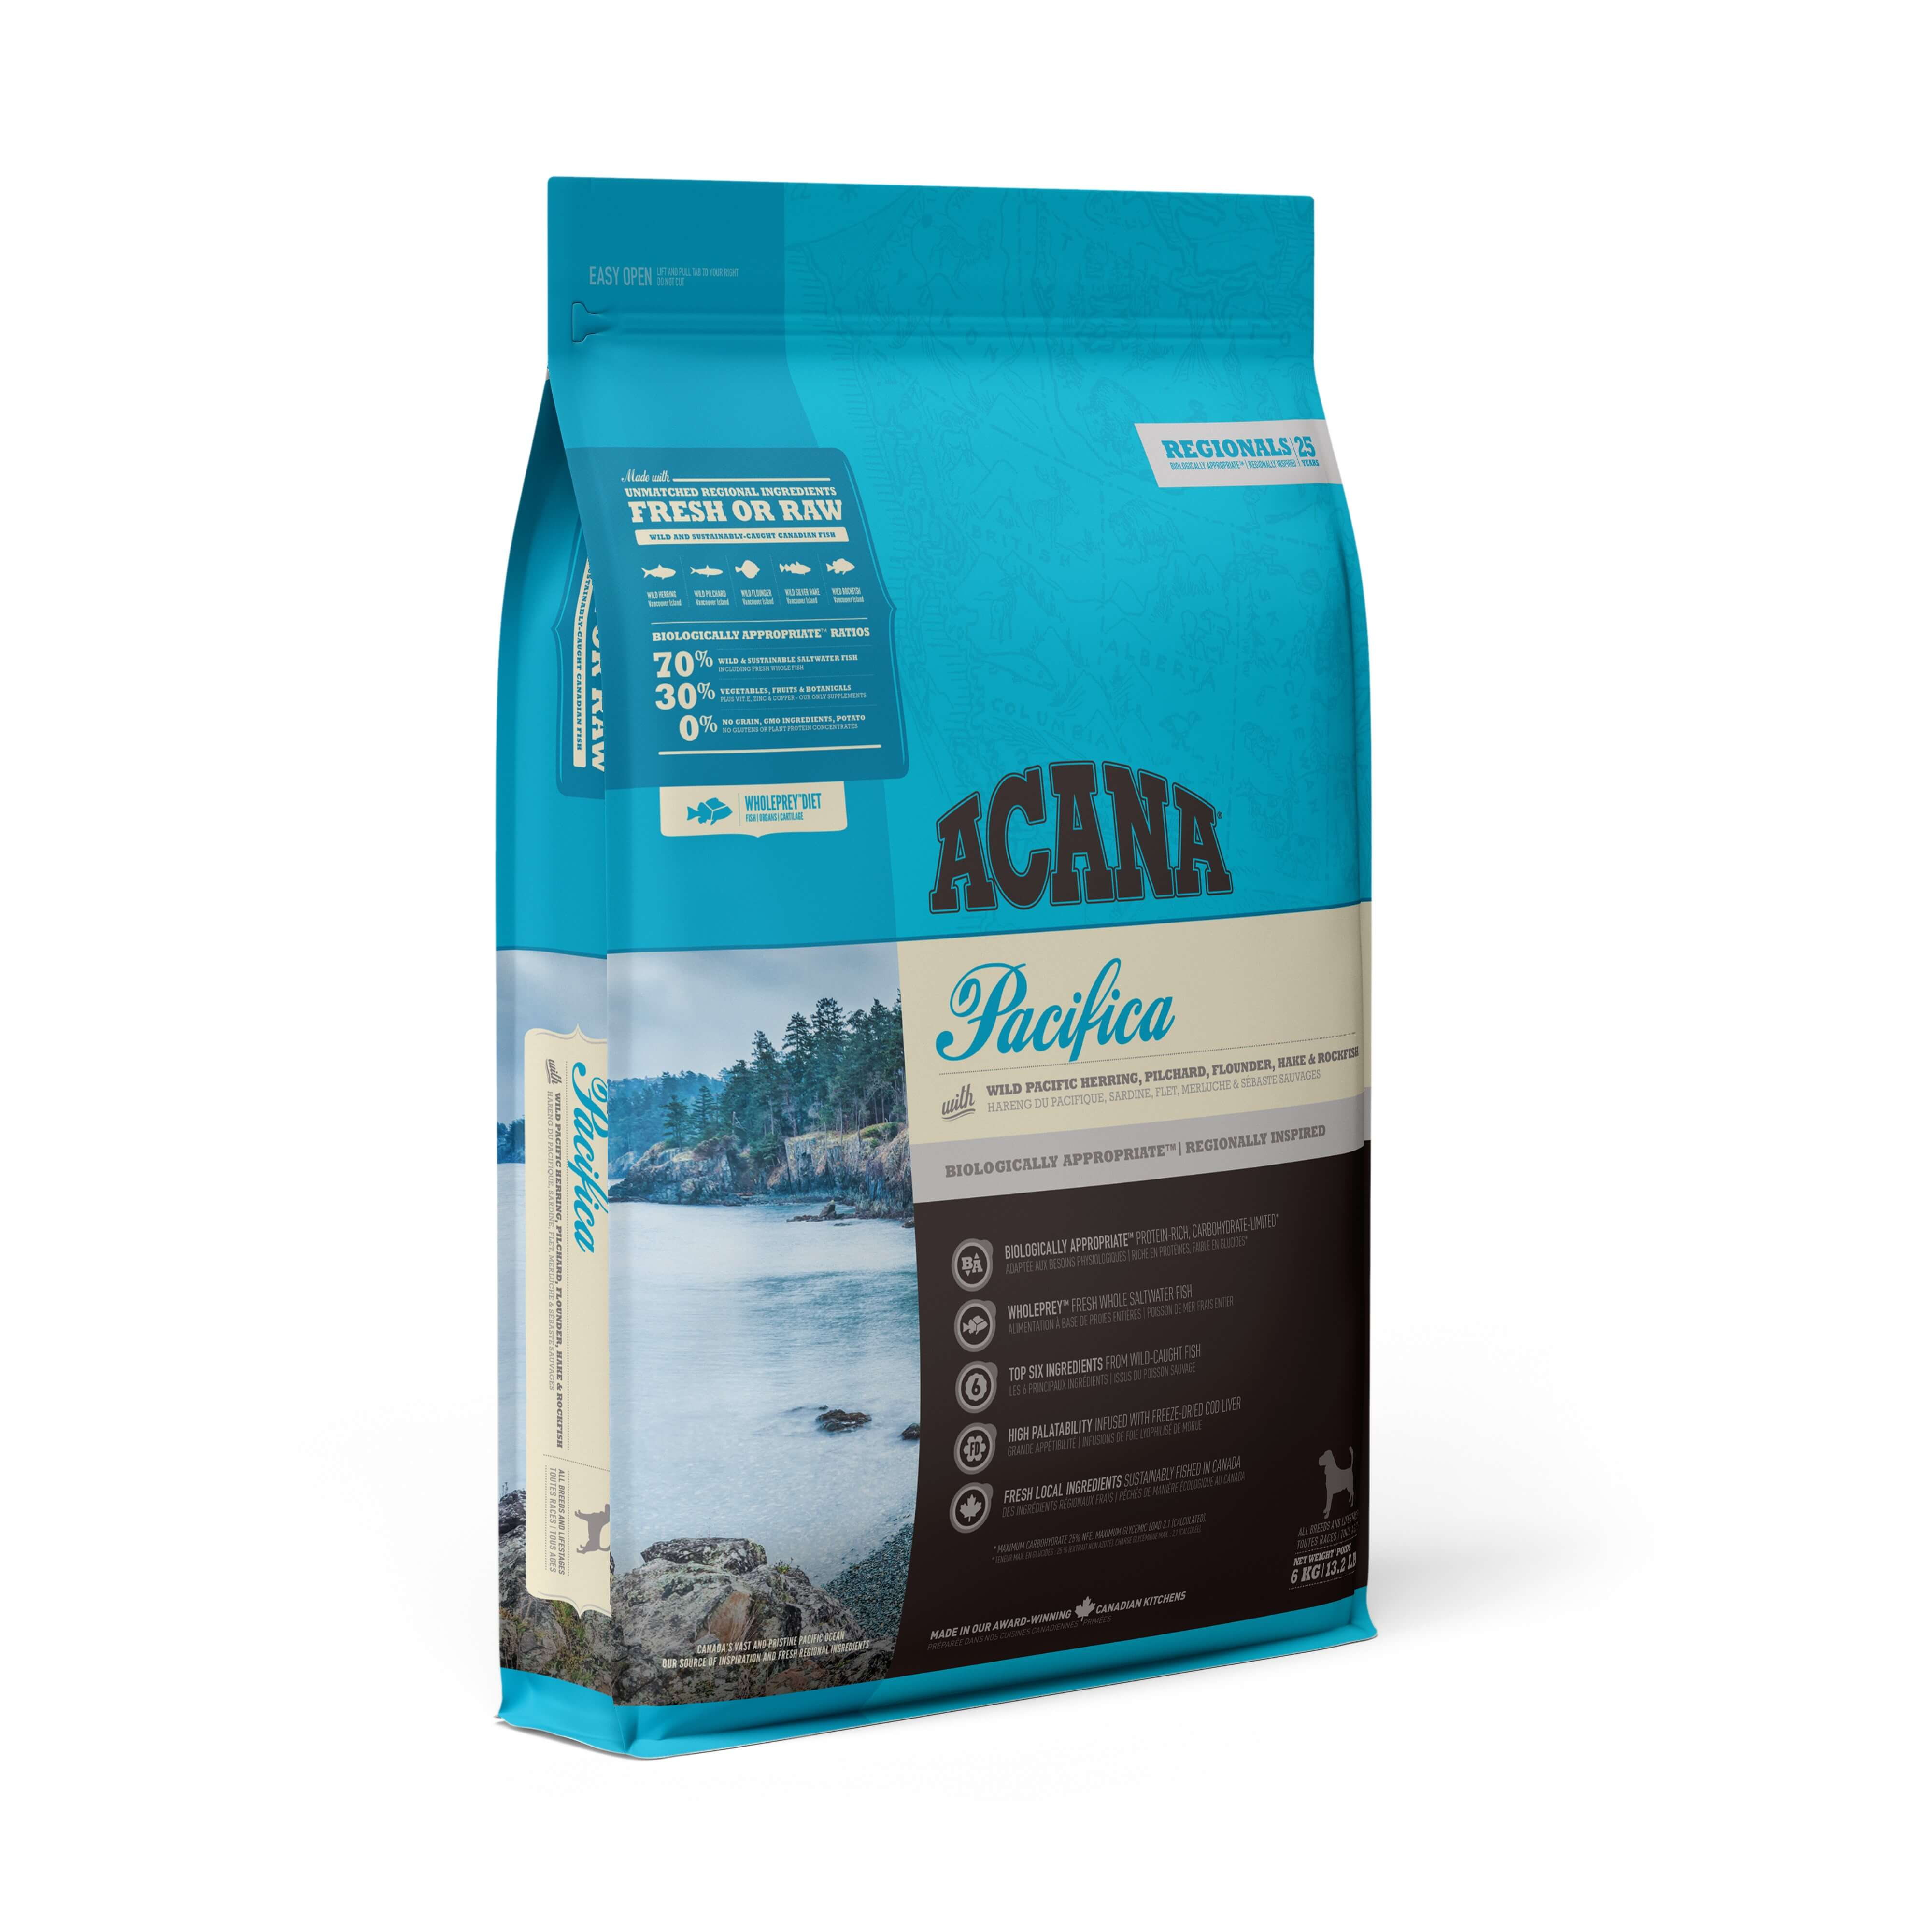 Acana Pacifica Dog | 2kg - Click to enlarge picture.